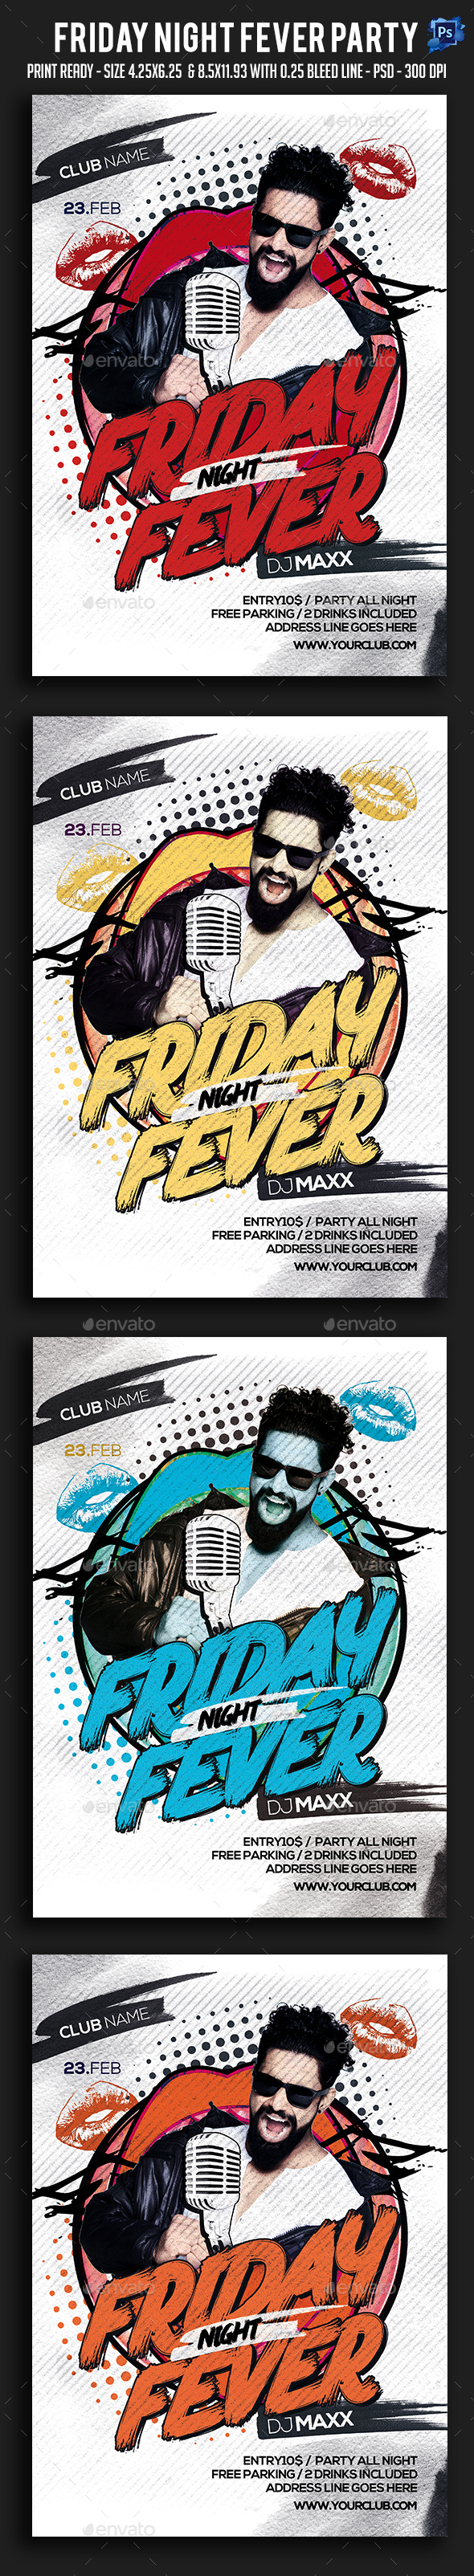 Friday Night Fever Party Flyer - Clubs & Parties Events